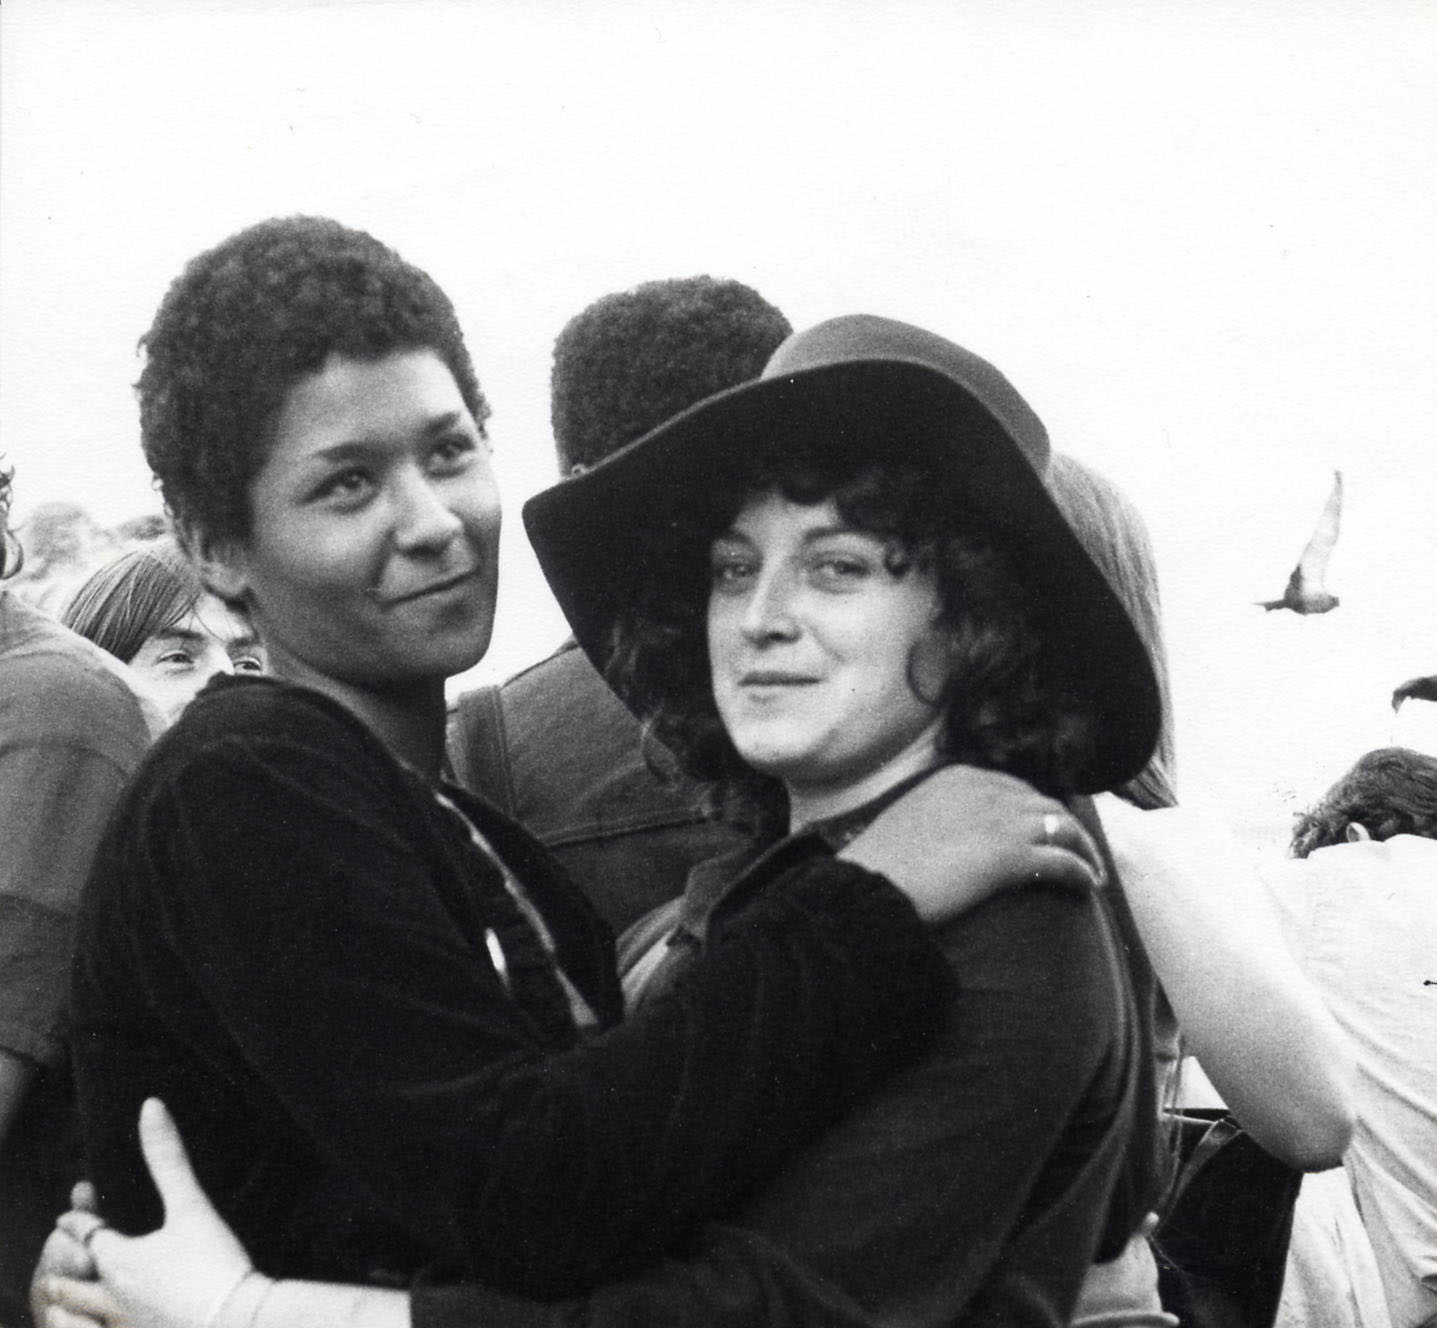 Two women, a Black woman and a white woman hold each other and smile at the camera during a Gay Liberation Front demonstration in 1972